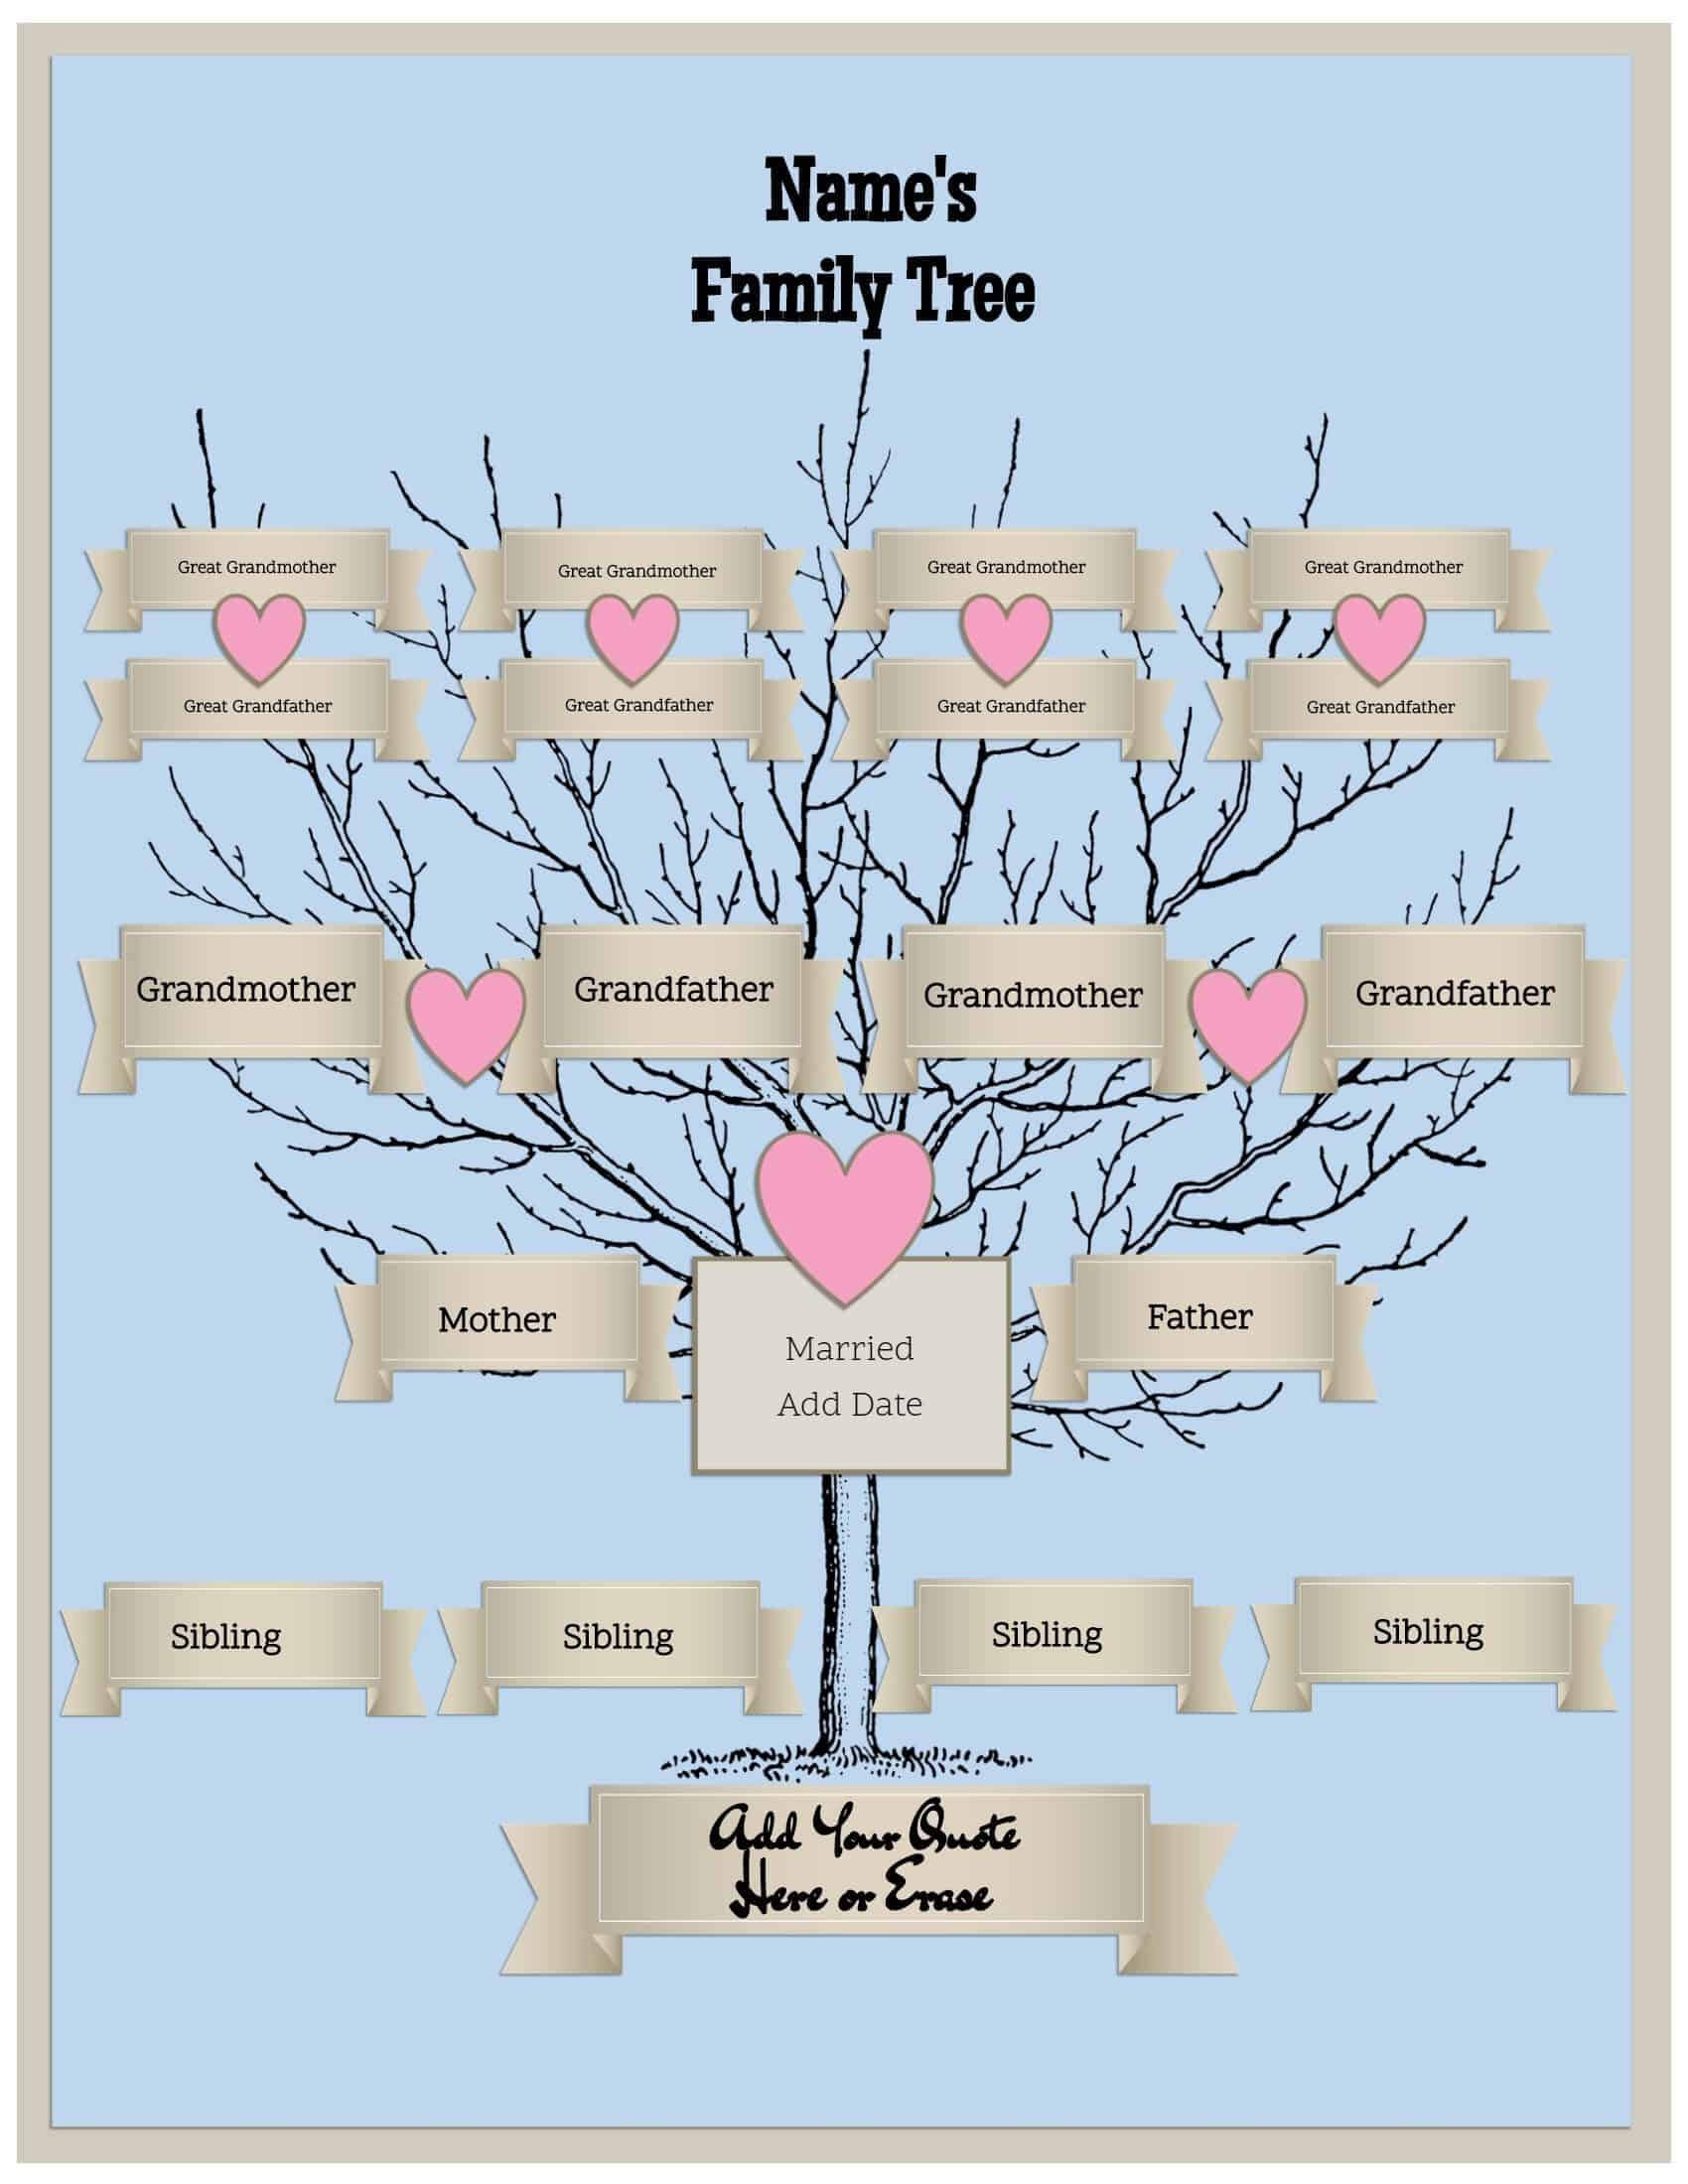 4 Generation Family Tree Template Free To Customize & Print Inside 3 Generation Family Tree Template Word